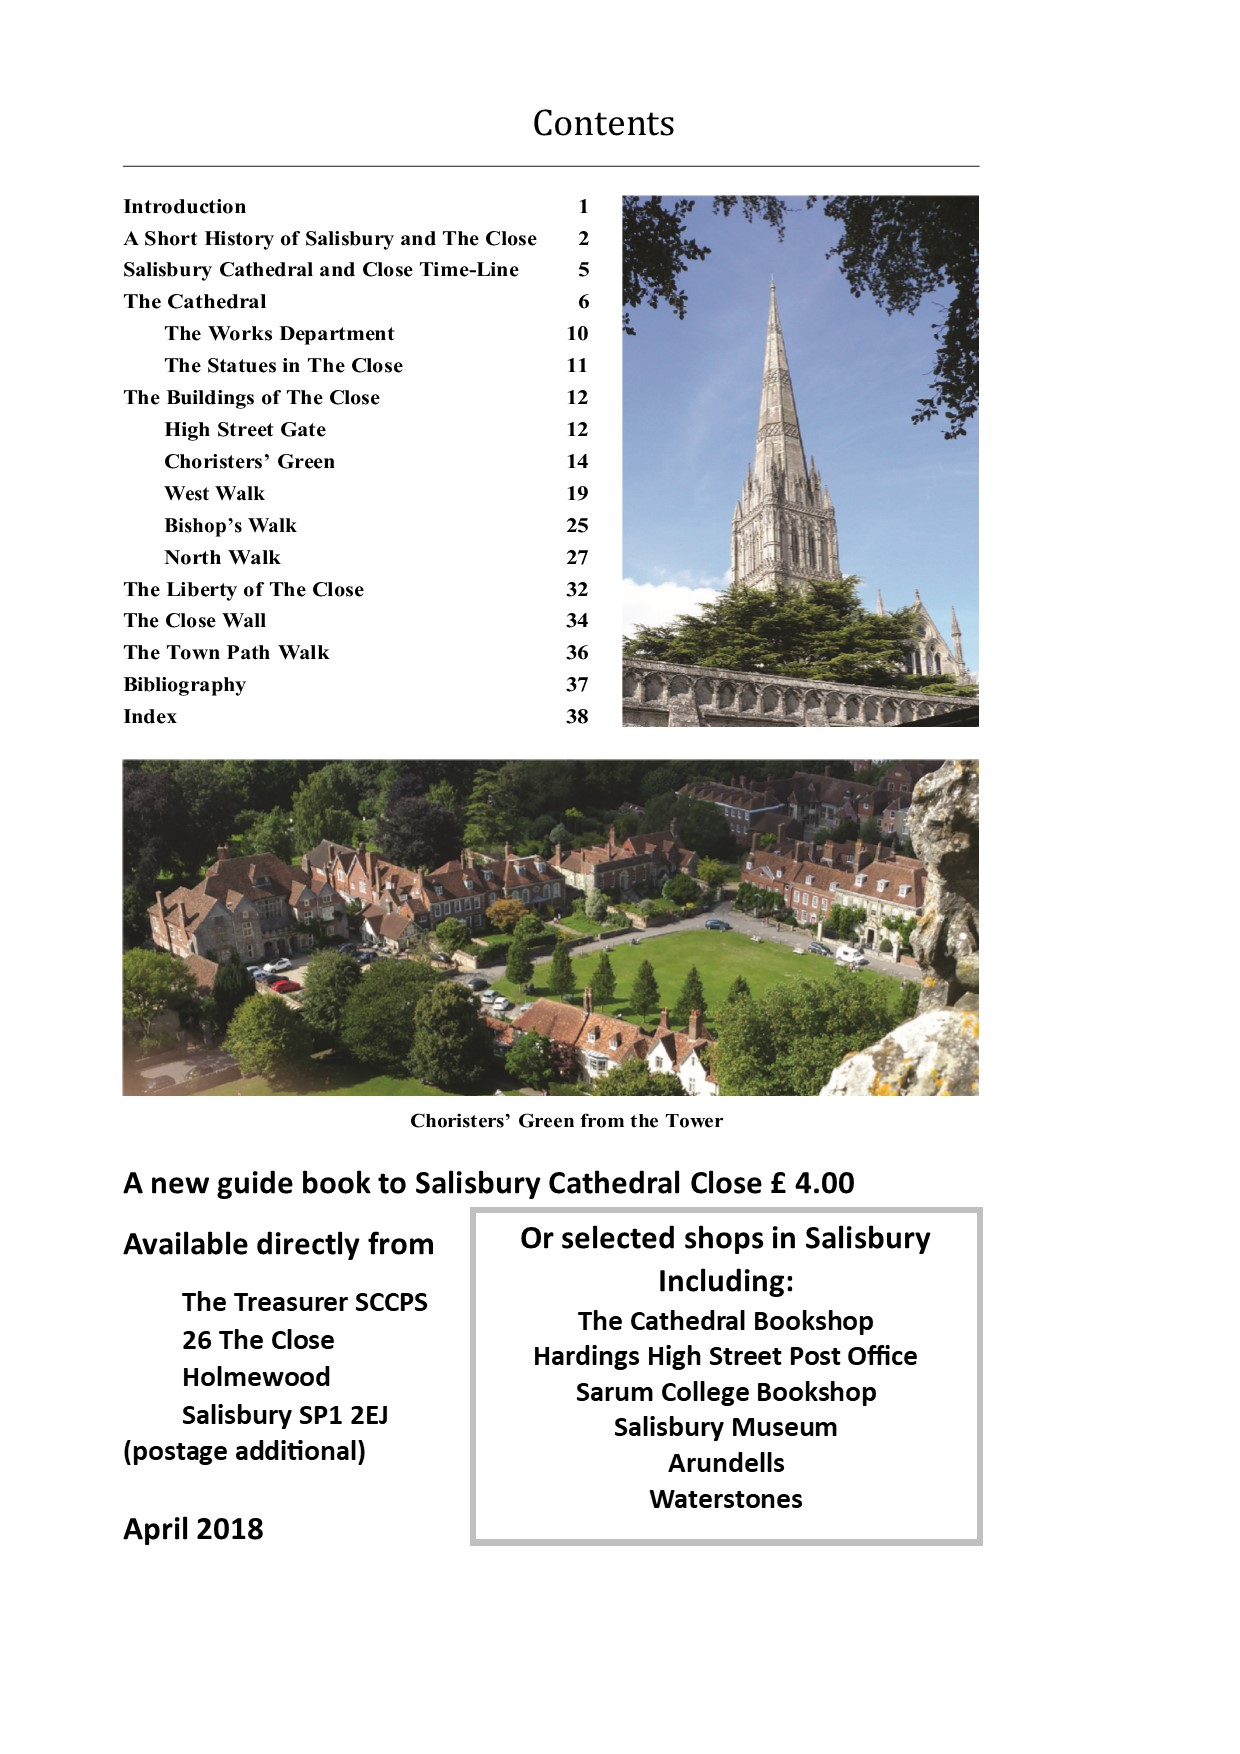 Guide Book Flyer